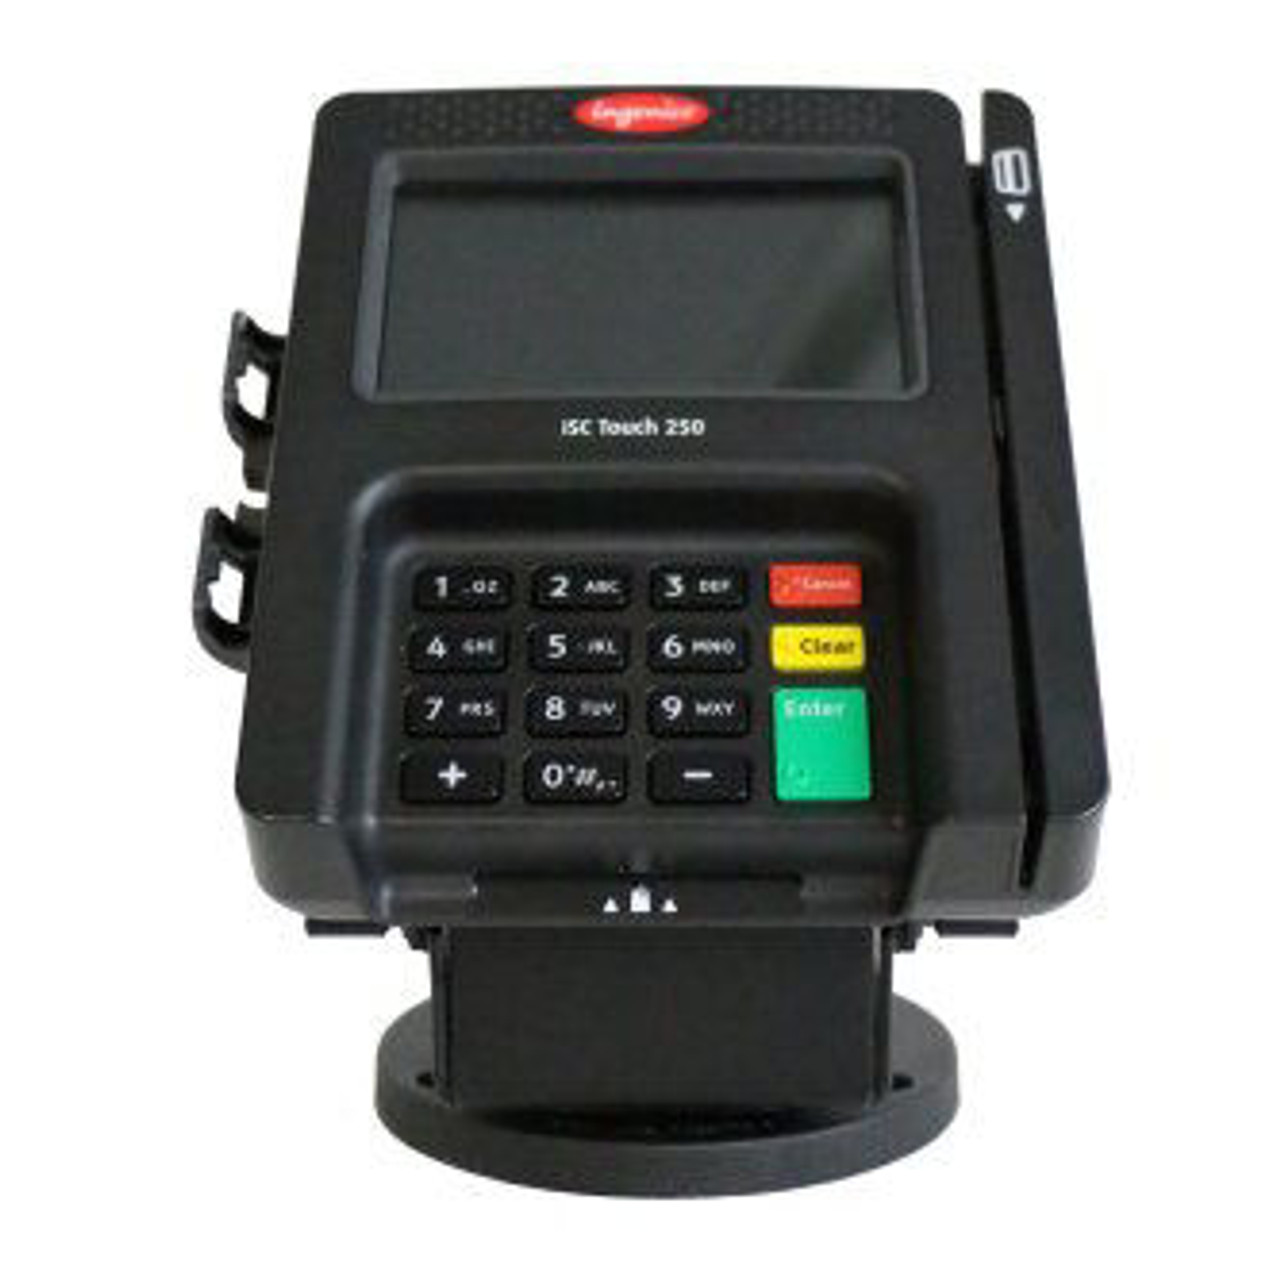 Ingenico iSC250 Credit Card Stand Low Profile EMV Clearance by Swivel Stands